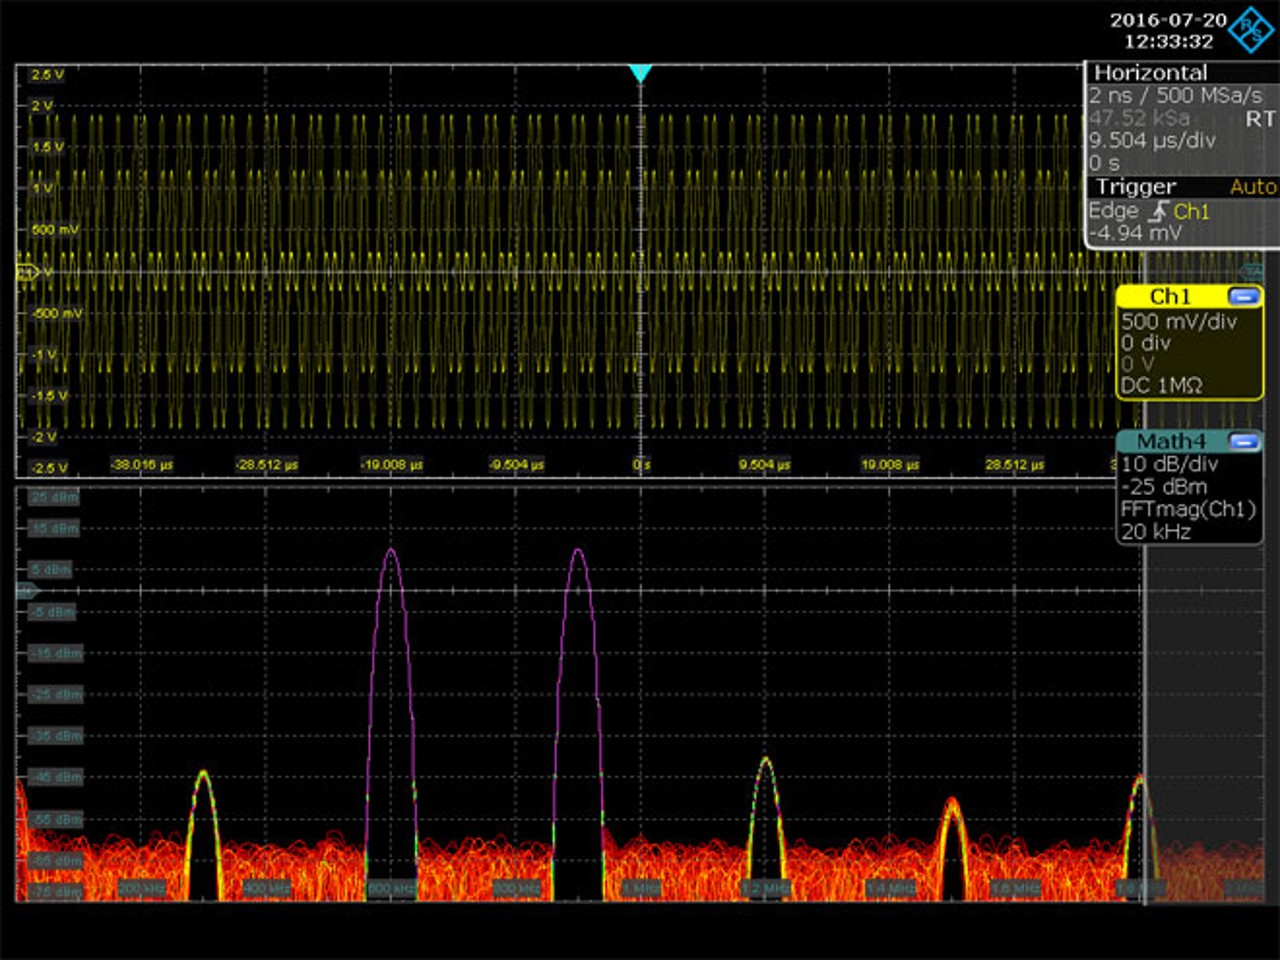 waveform-containing-two-different-sine-waves_05.jpg